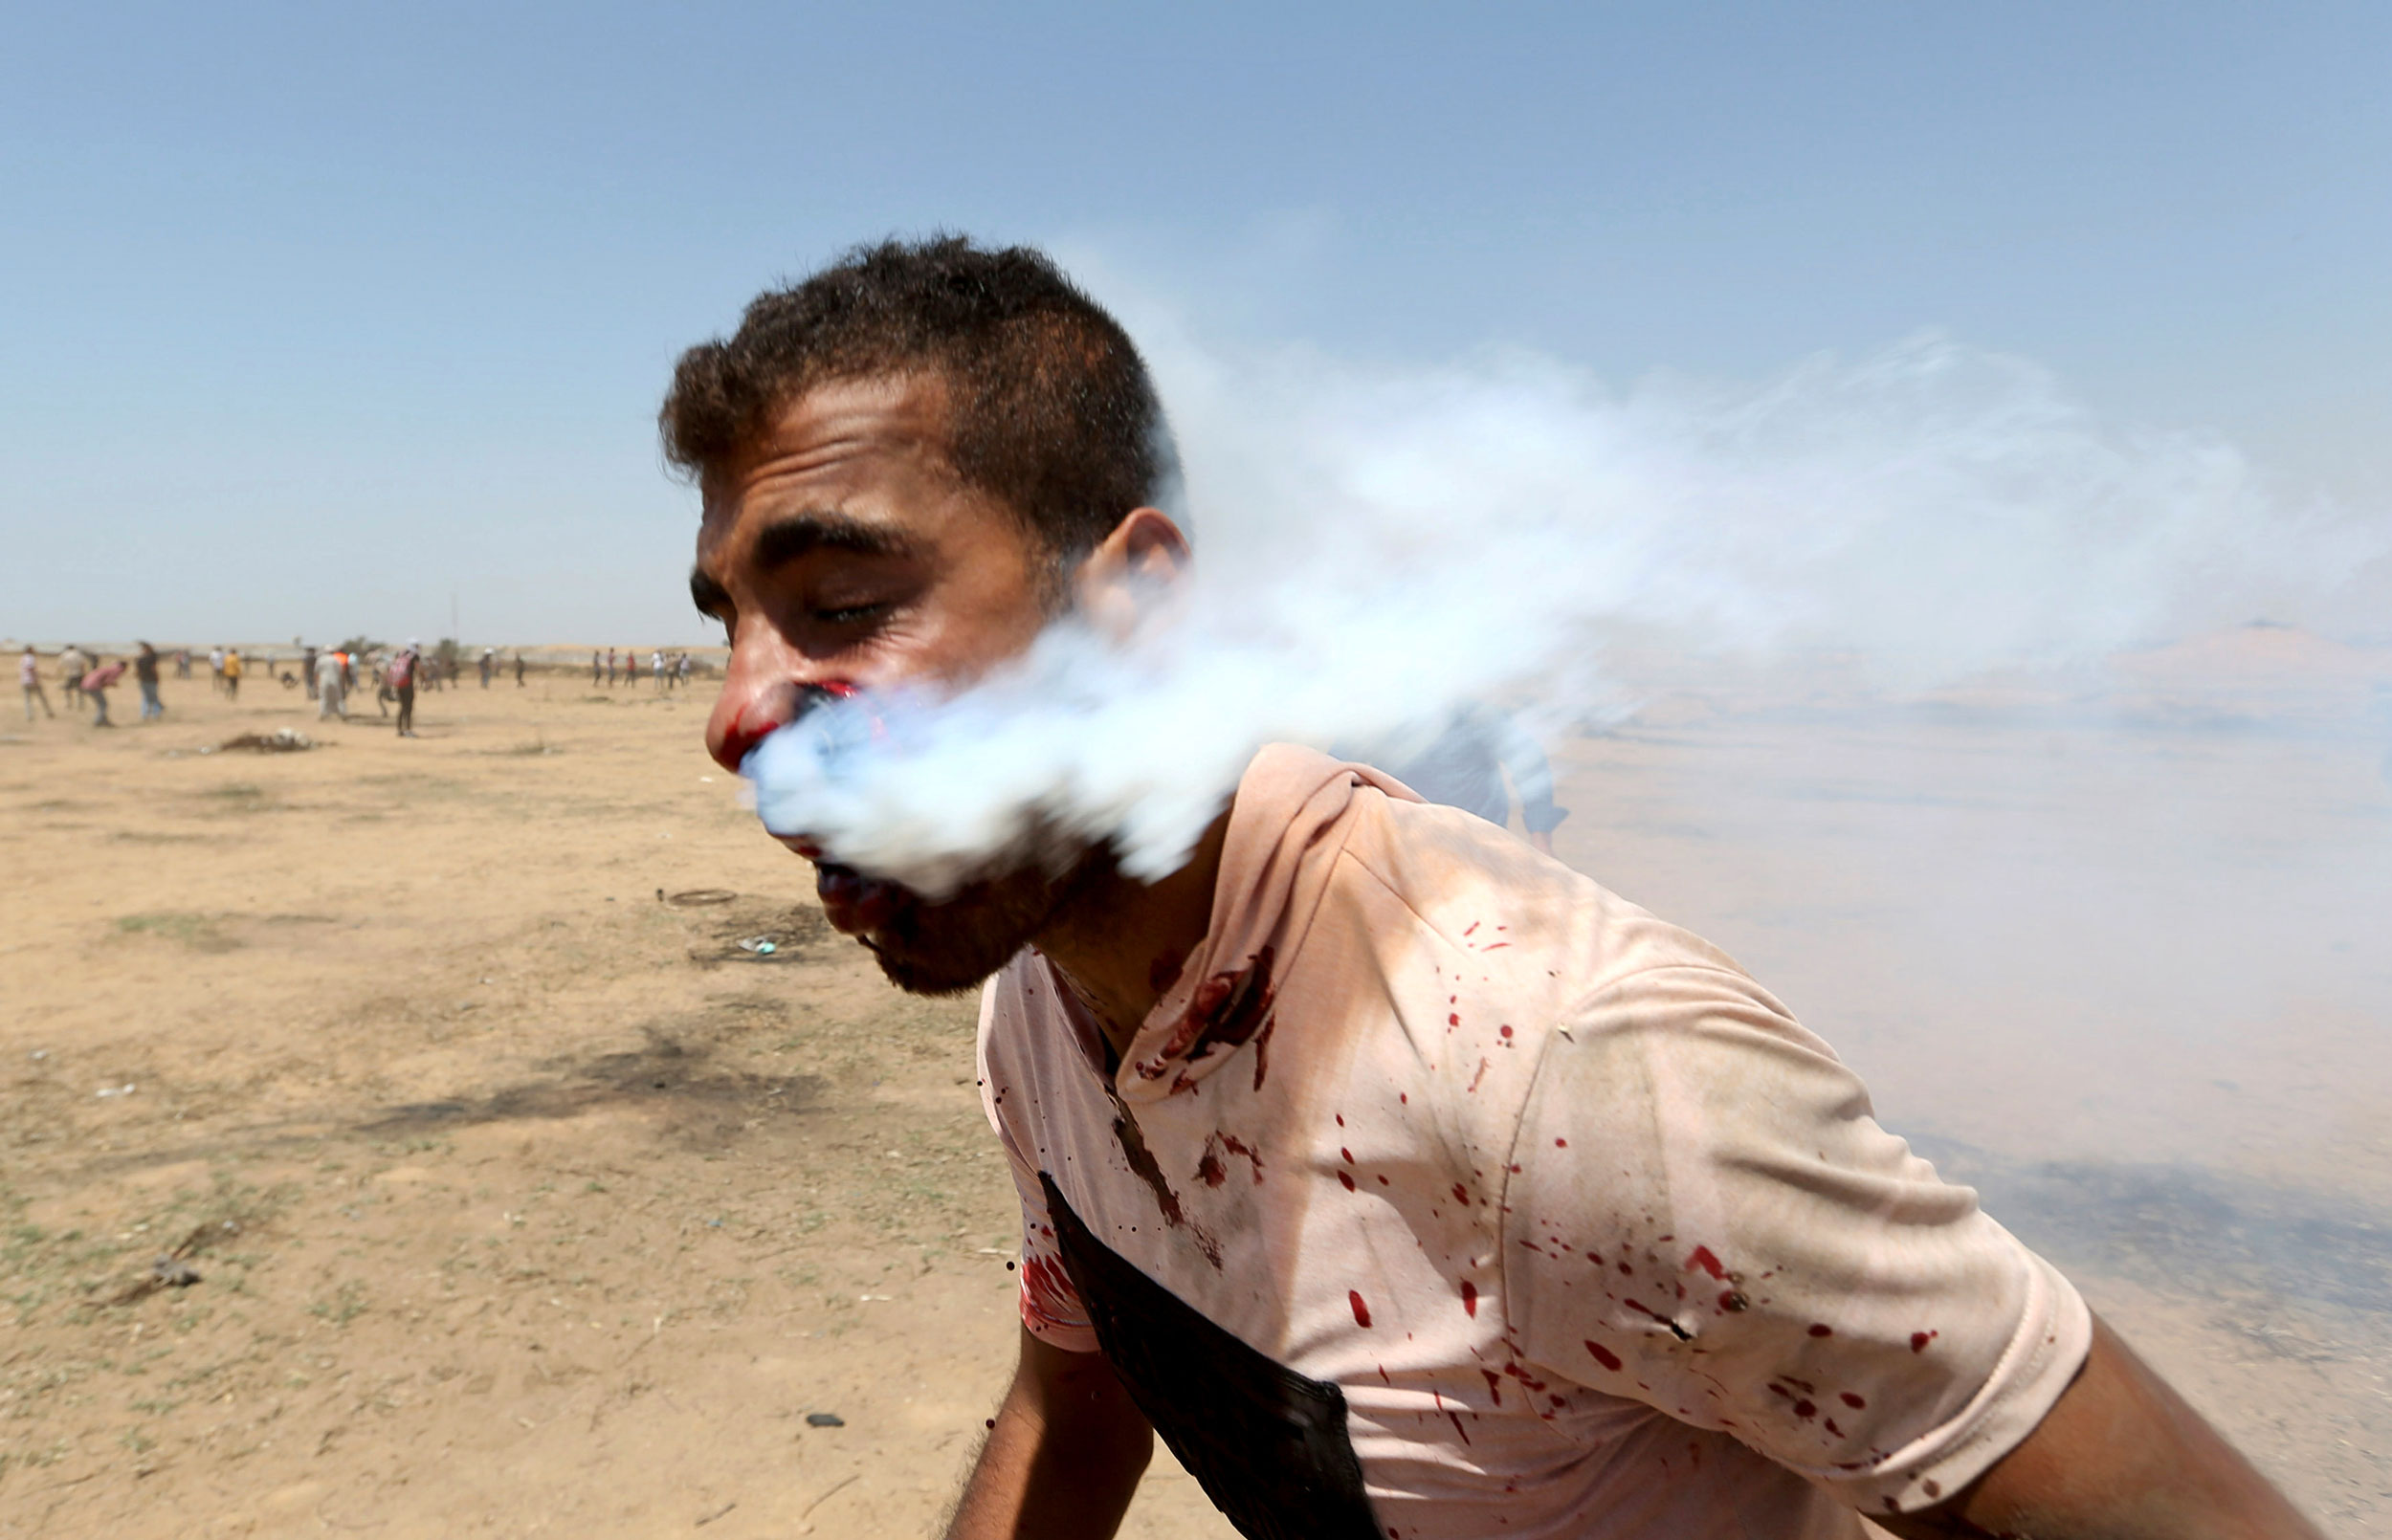 Tear gas streams from a man's face after he is hit in the face with a tear gas canister